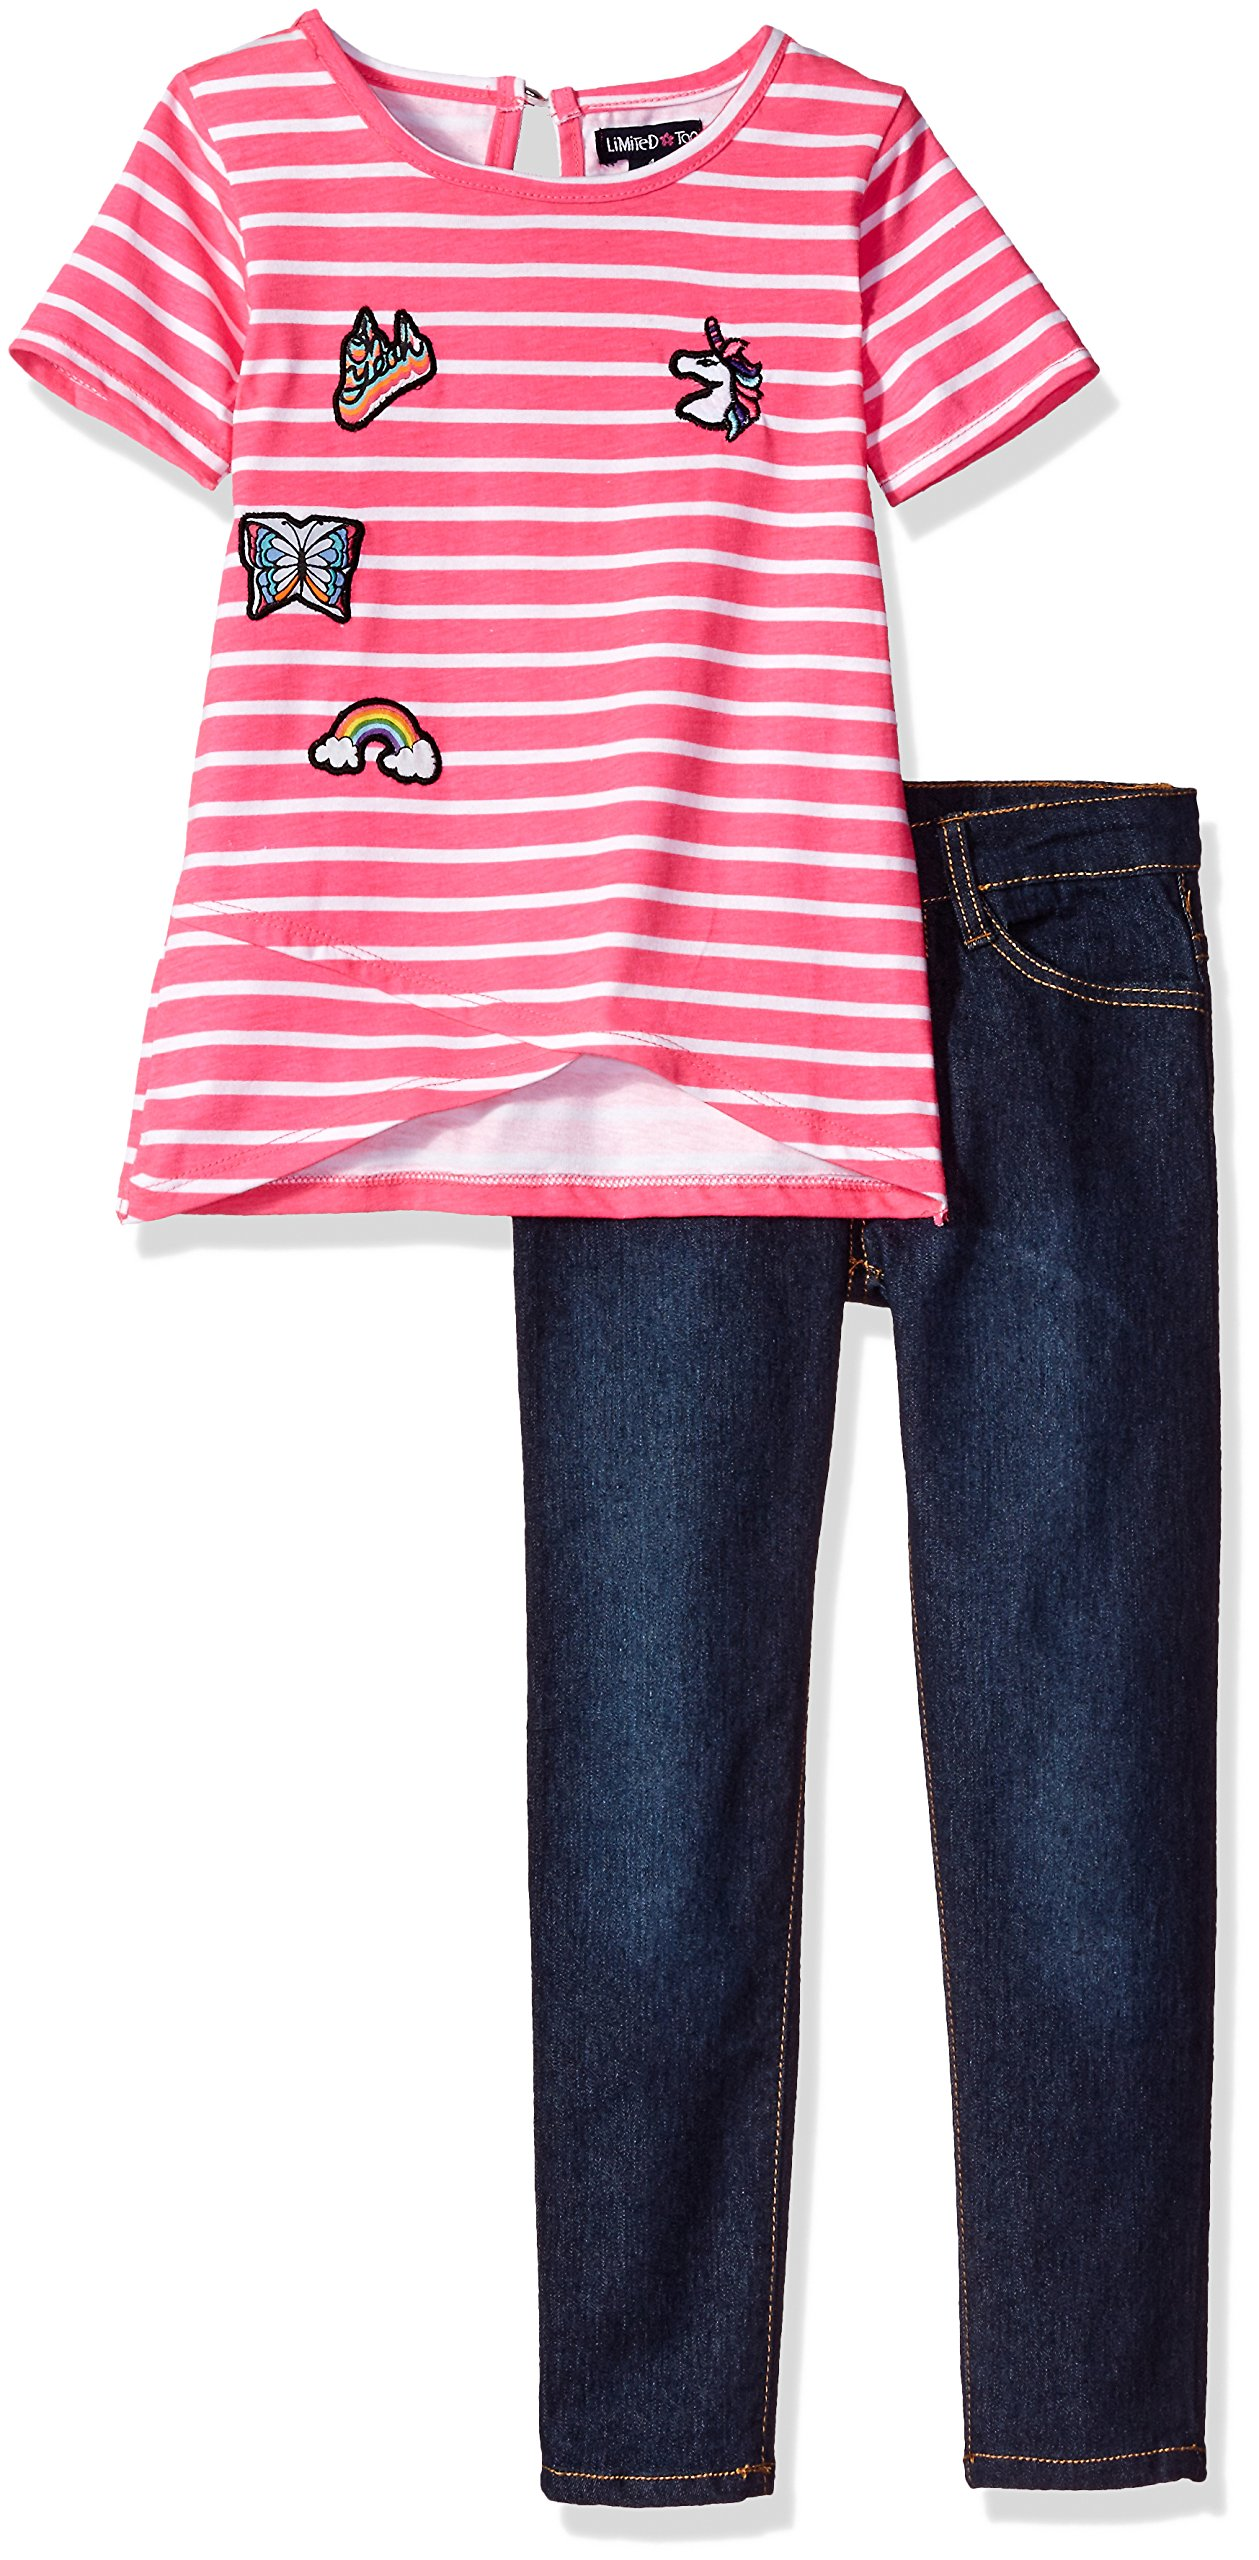 Limited Too Toddler Girls' Fashion Top and Pant Set (More Styles Available), Dark Blue Denim-Cbdd, 3T